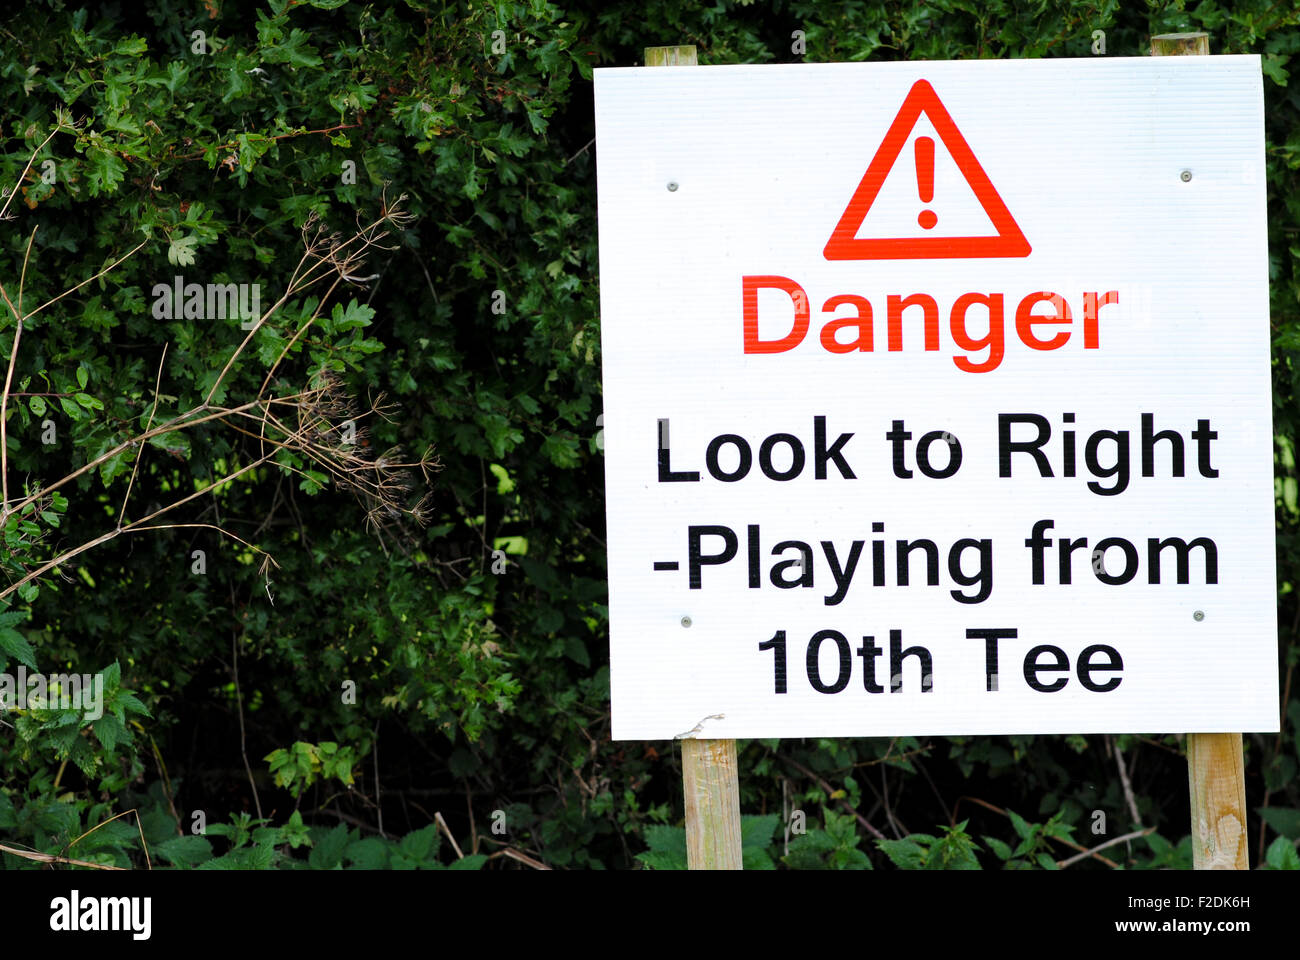 Danger golf golfers sign - Stock Image